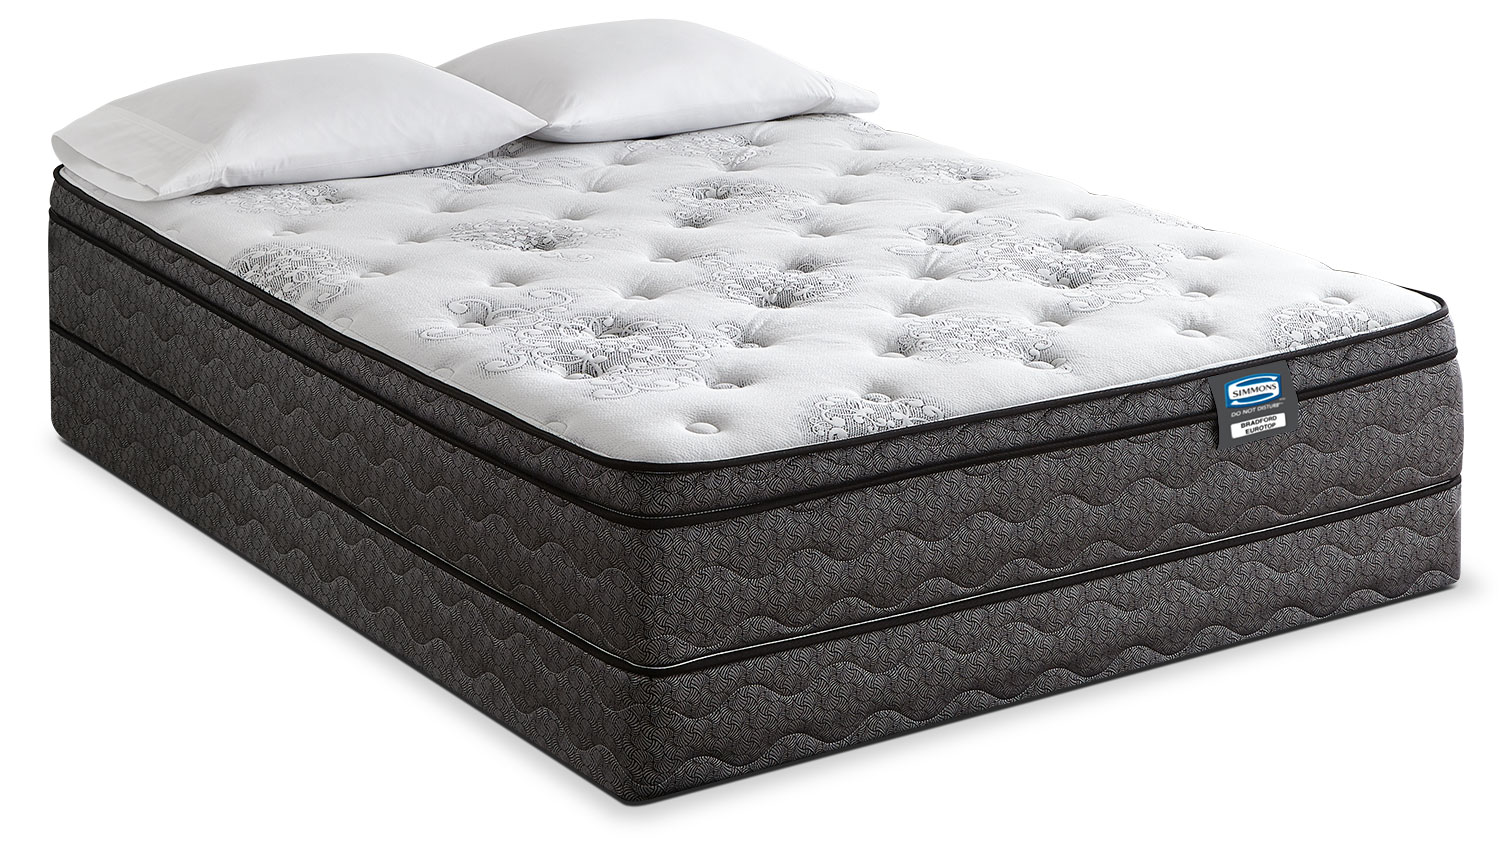 Simmons Do Not Disturb Bradford Euro-Top Firm Full Mattress Set